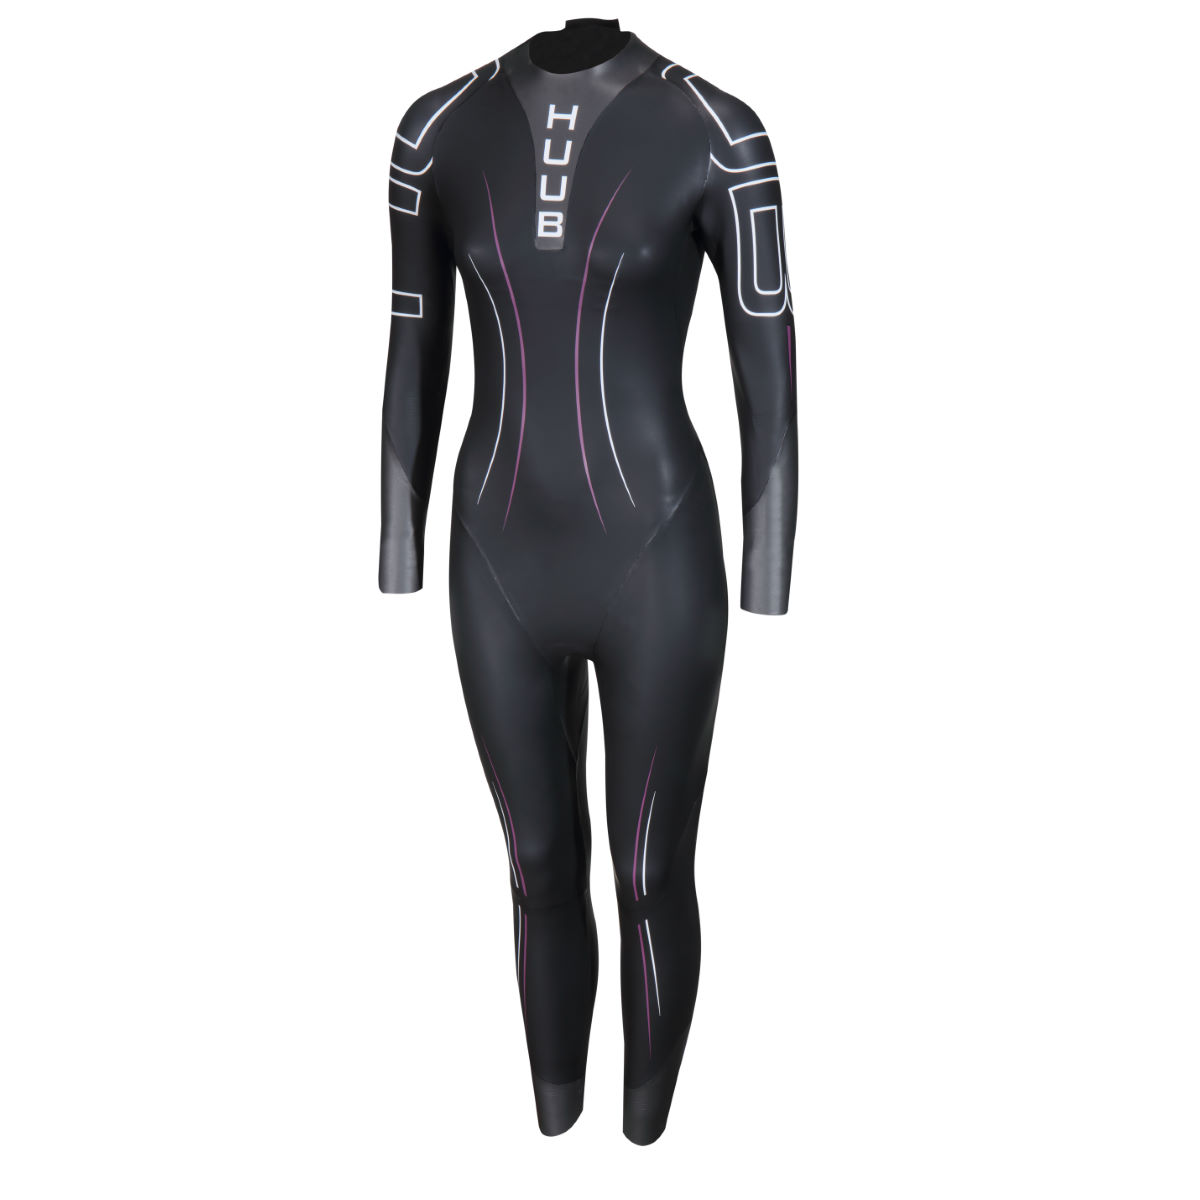 Huub aira wiggle exclusive women s wetsuit wetsuits black 2016 aira33xs